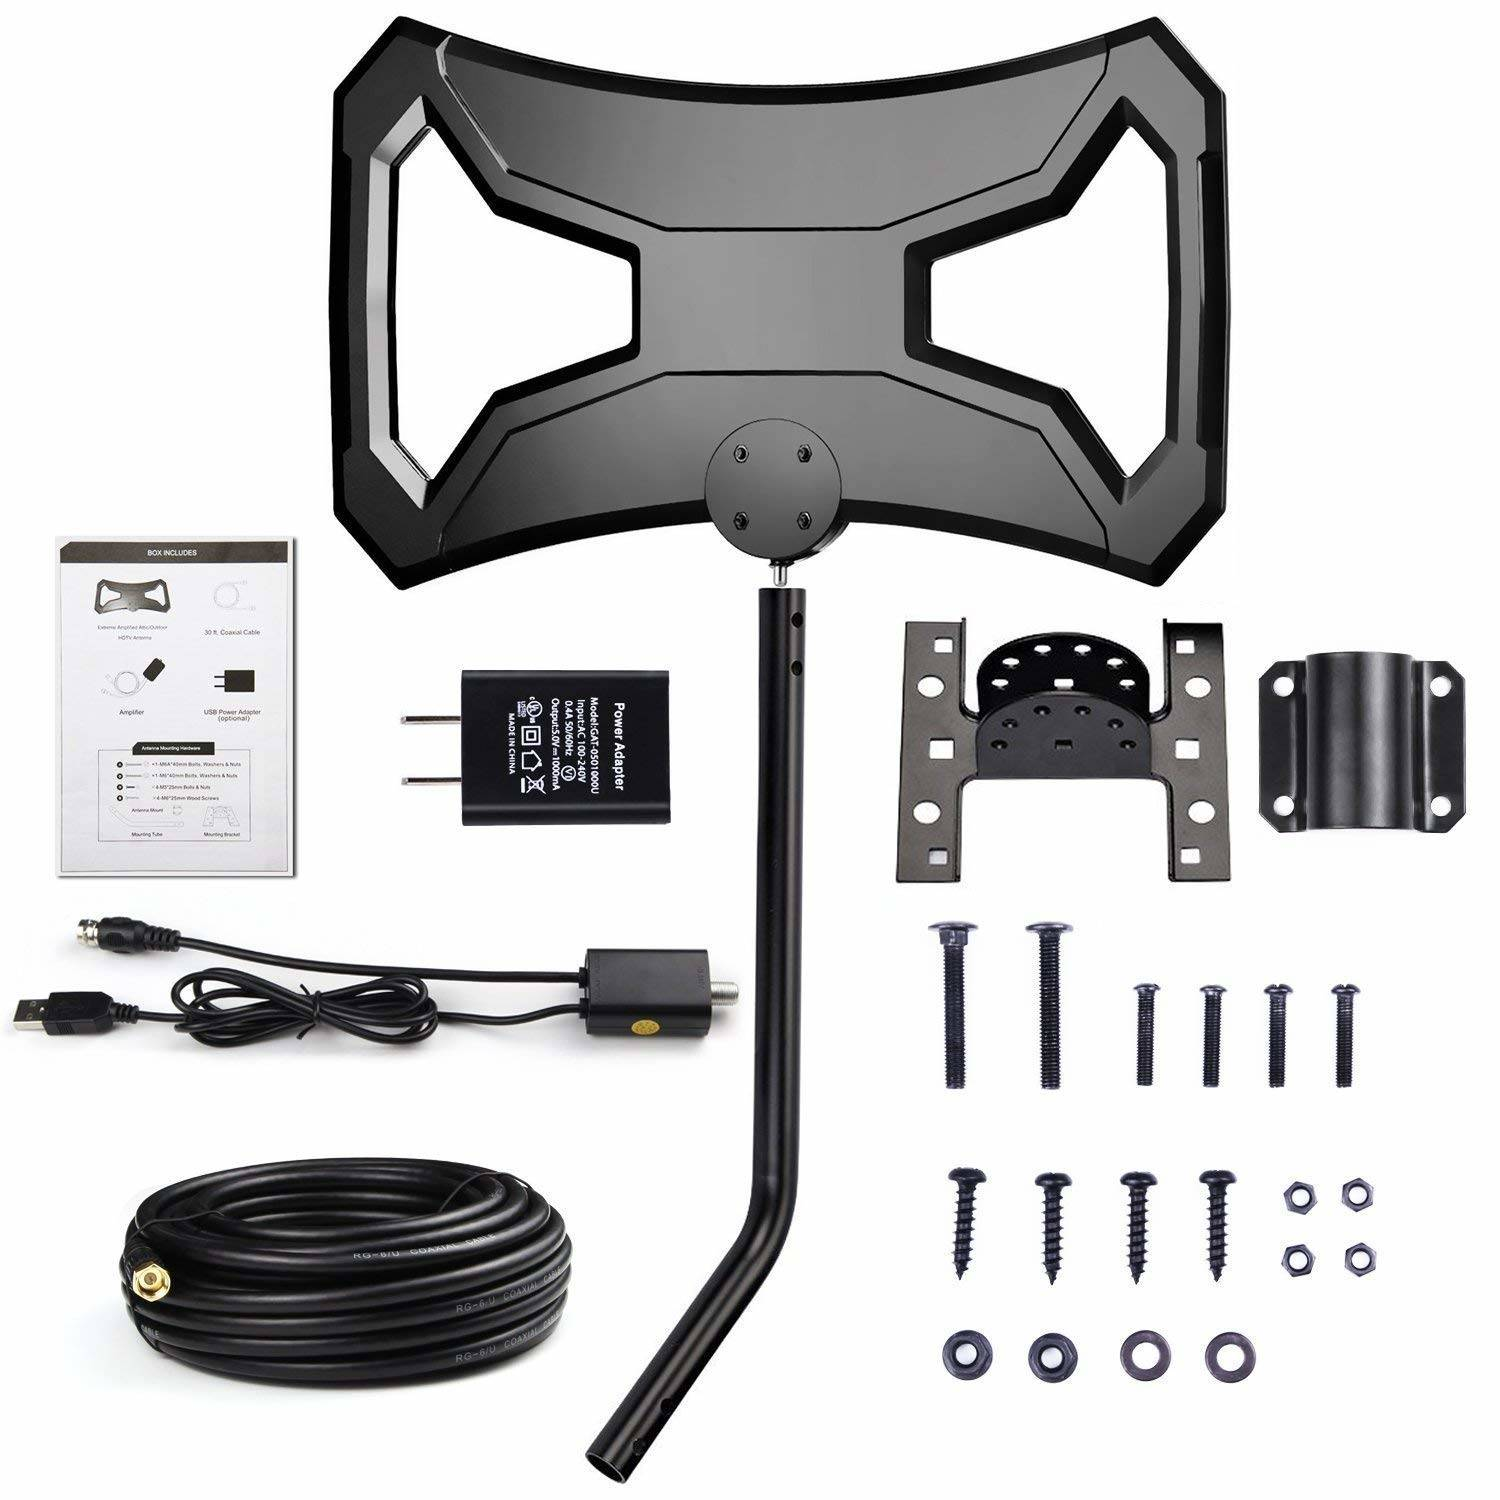 Anti-UV Digital Antenna Long Range Multi-Directional Reception Antenna with Pole Mount for 4K FM//VHF//UHF Free Channels Attic,RV Used Efind 150 Miles Amplified HDTV Antenna Outdoor Waterproof